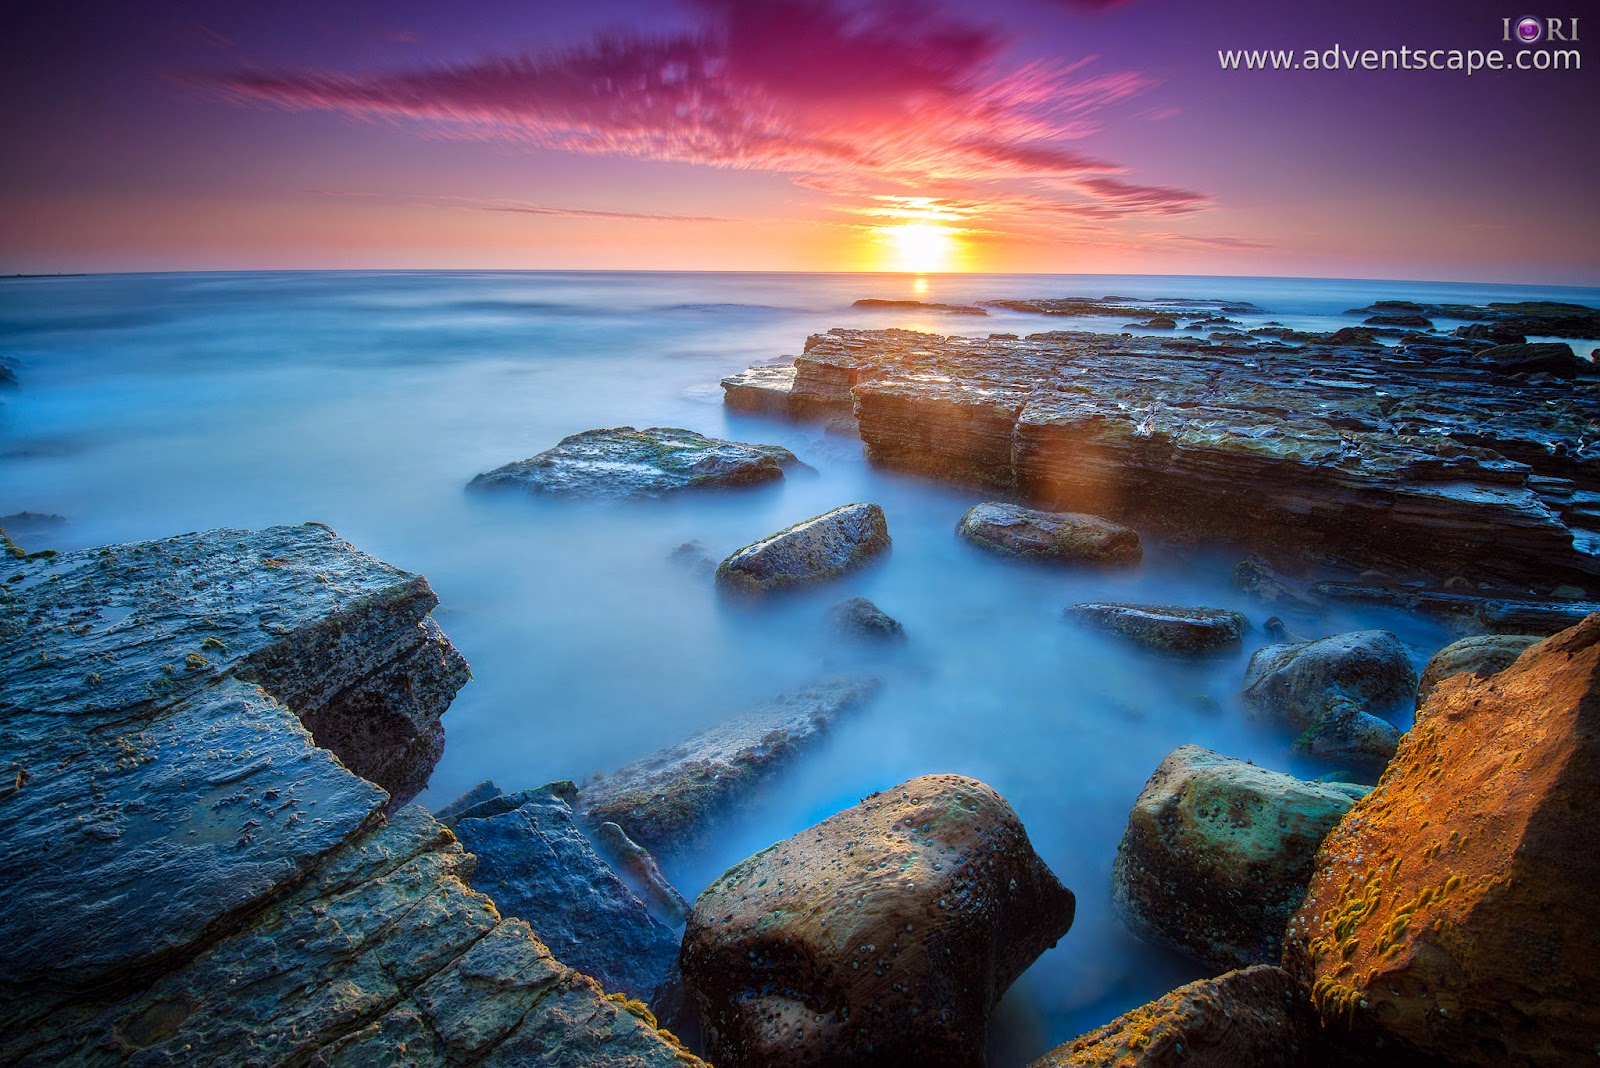 Australia, Australian Landscape Photographer, beach, coastline, landscape, New South Wales, NSW, Philip Avellana, seascape, shoreline, Turimetta, heaven's burnout